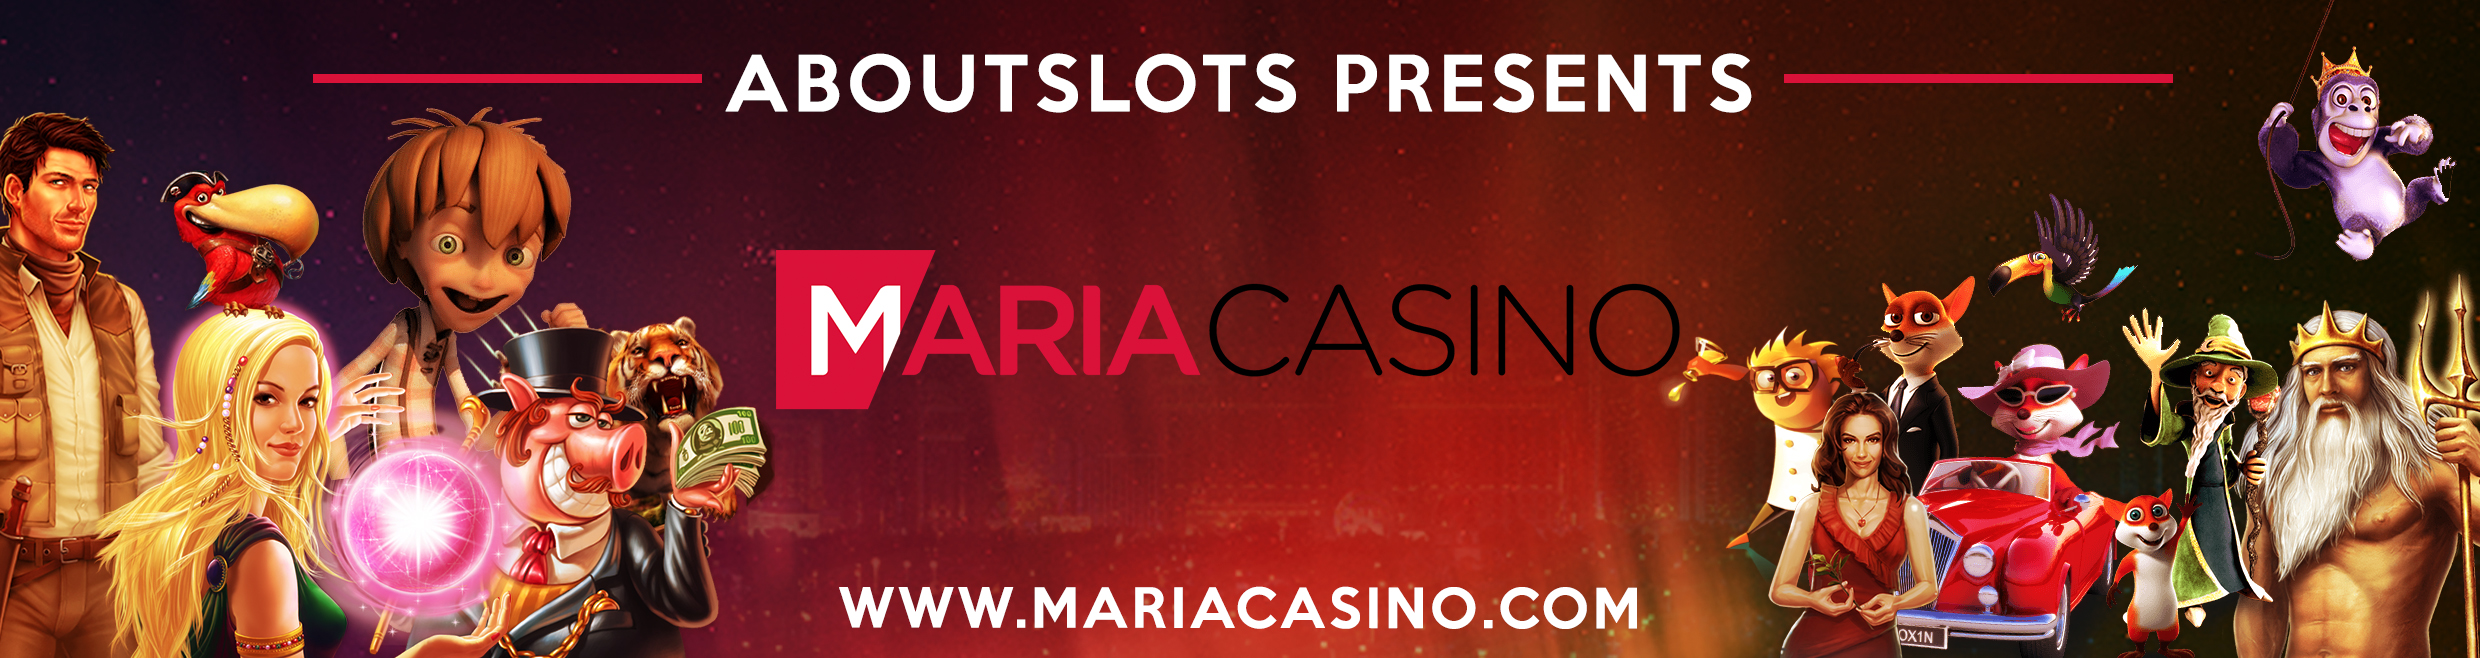 aboutslots